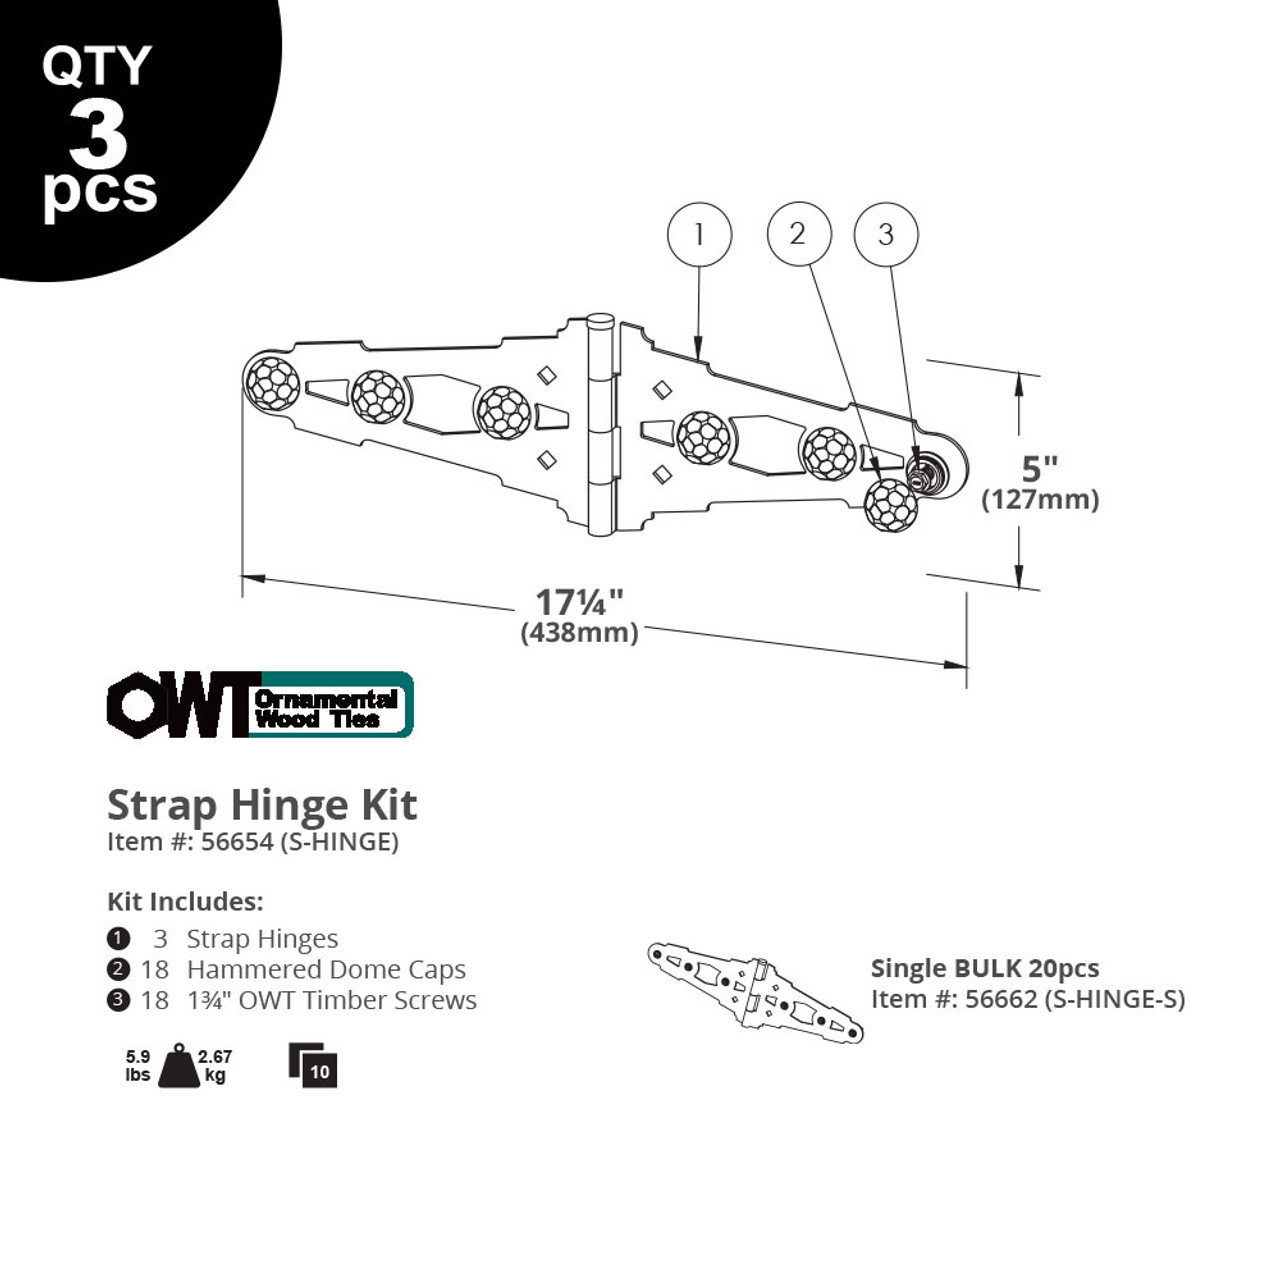 Strap Hinges from OZCO OWT Hardware - Illustration and Specifications